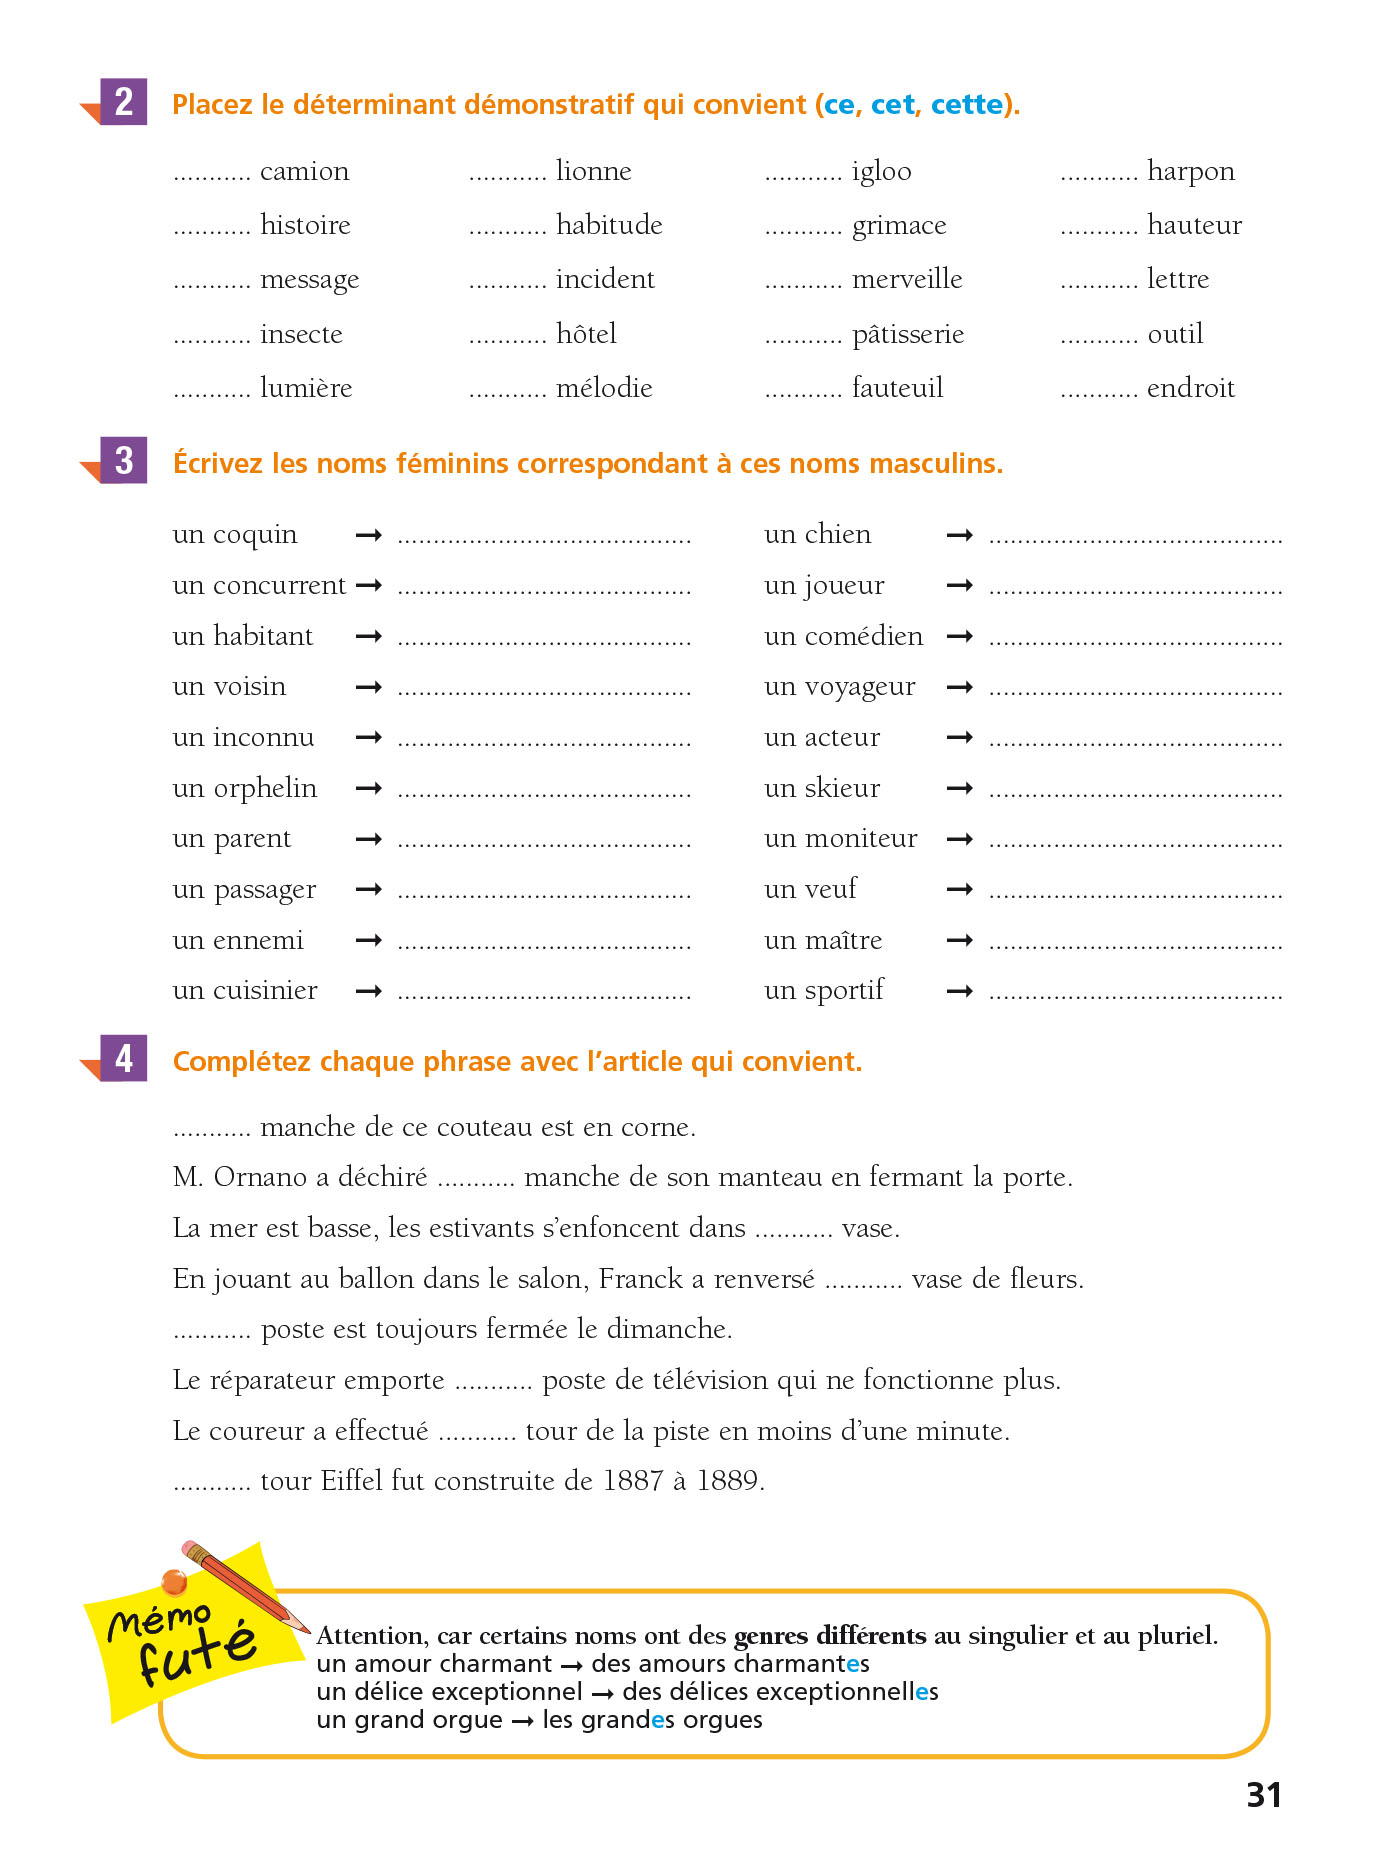 Cahier Bled Exercices D Orthographe 6e Hachette Education Famille Eleves Etudiants